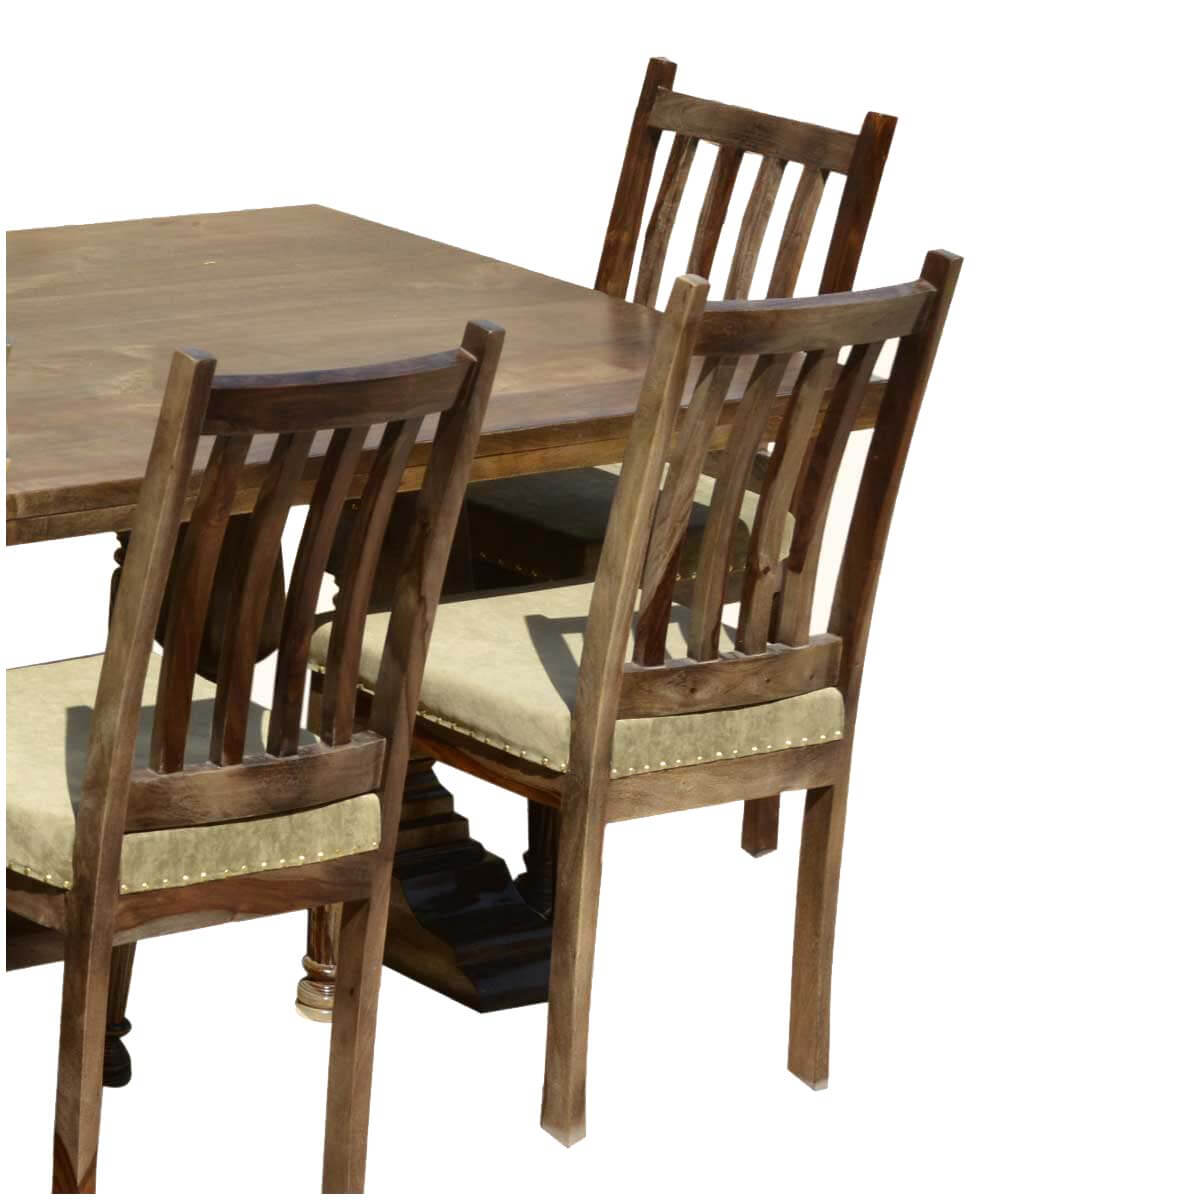 Farmhouse Solid Wood Trestle Rustic Dining Table  : 53014 from sierralivingconcepts.com size 1200 x 1200 jpeg 101kB